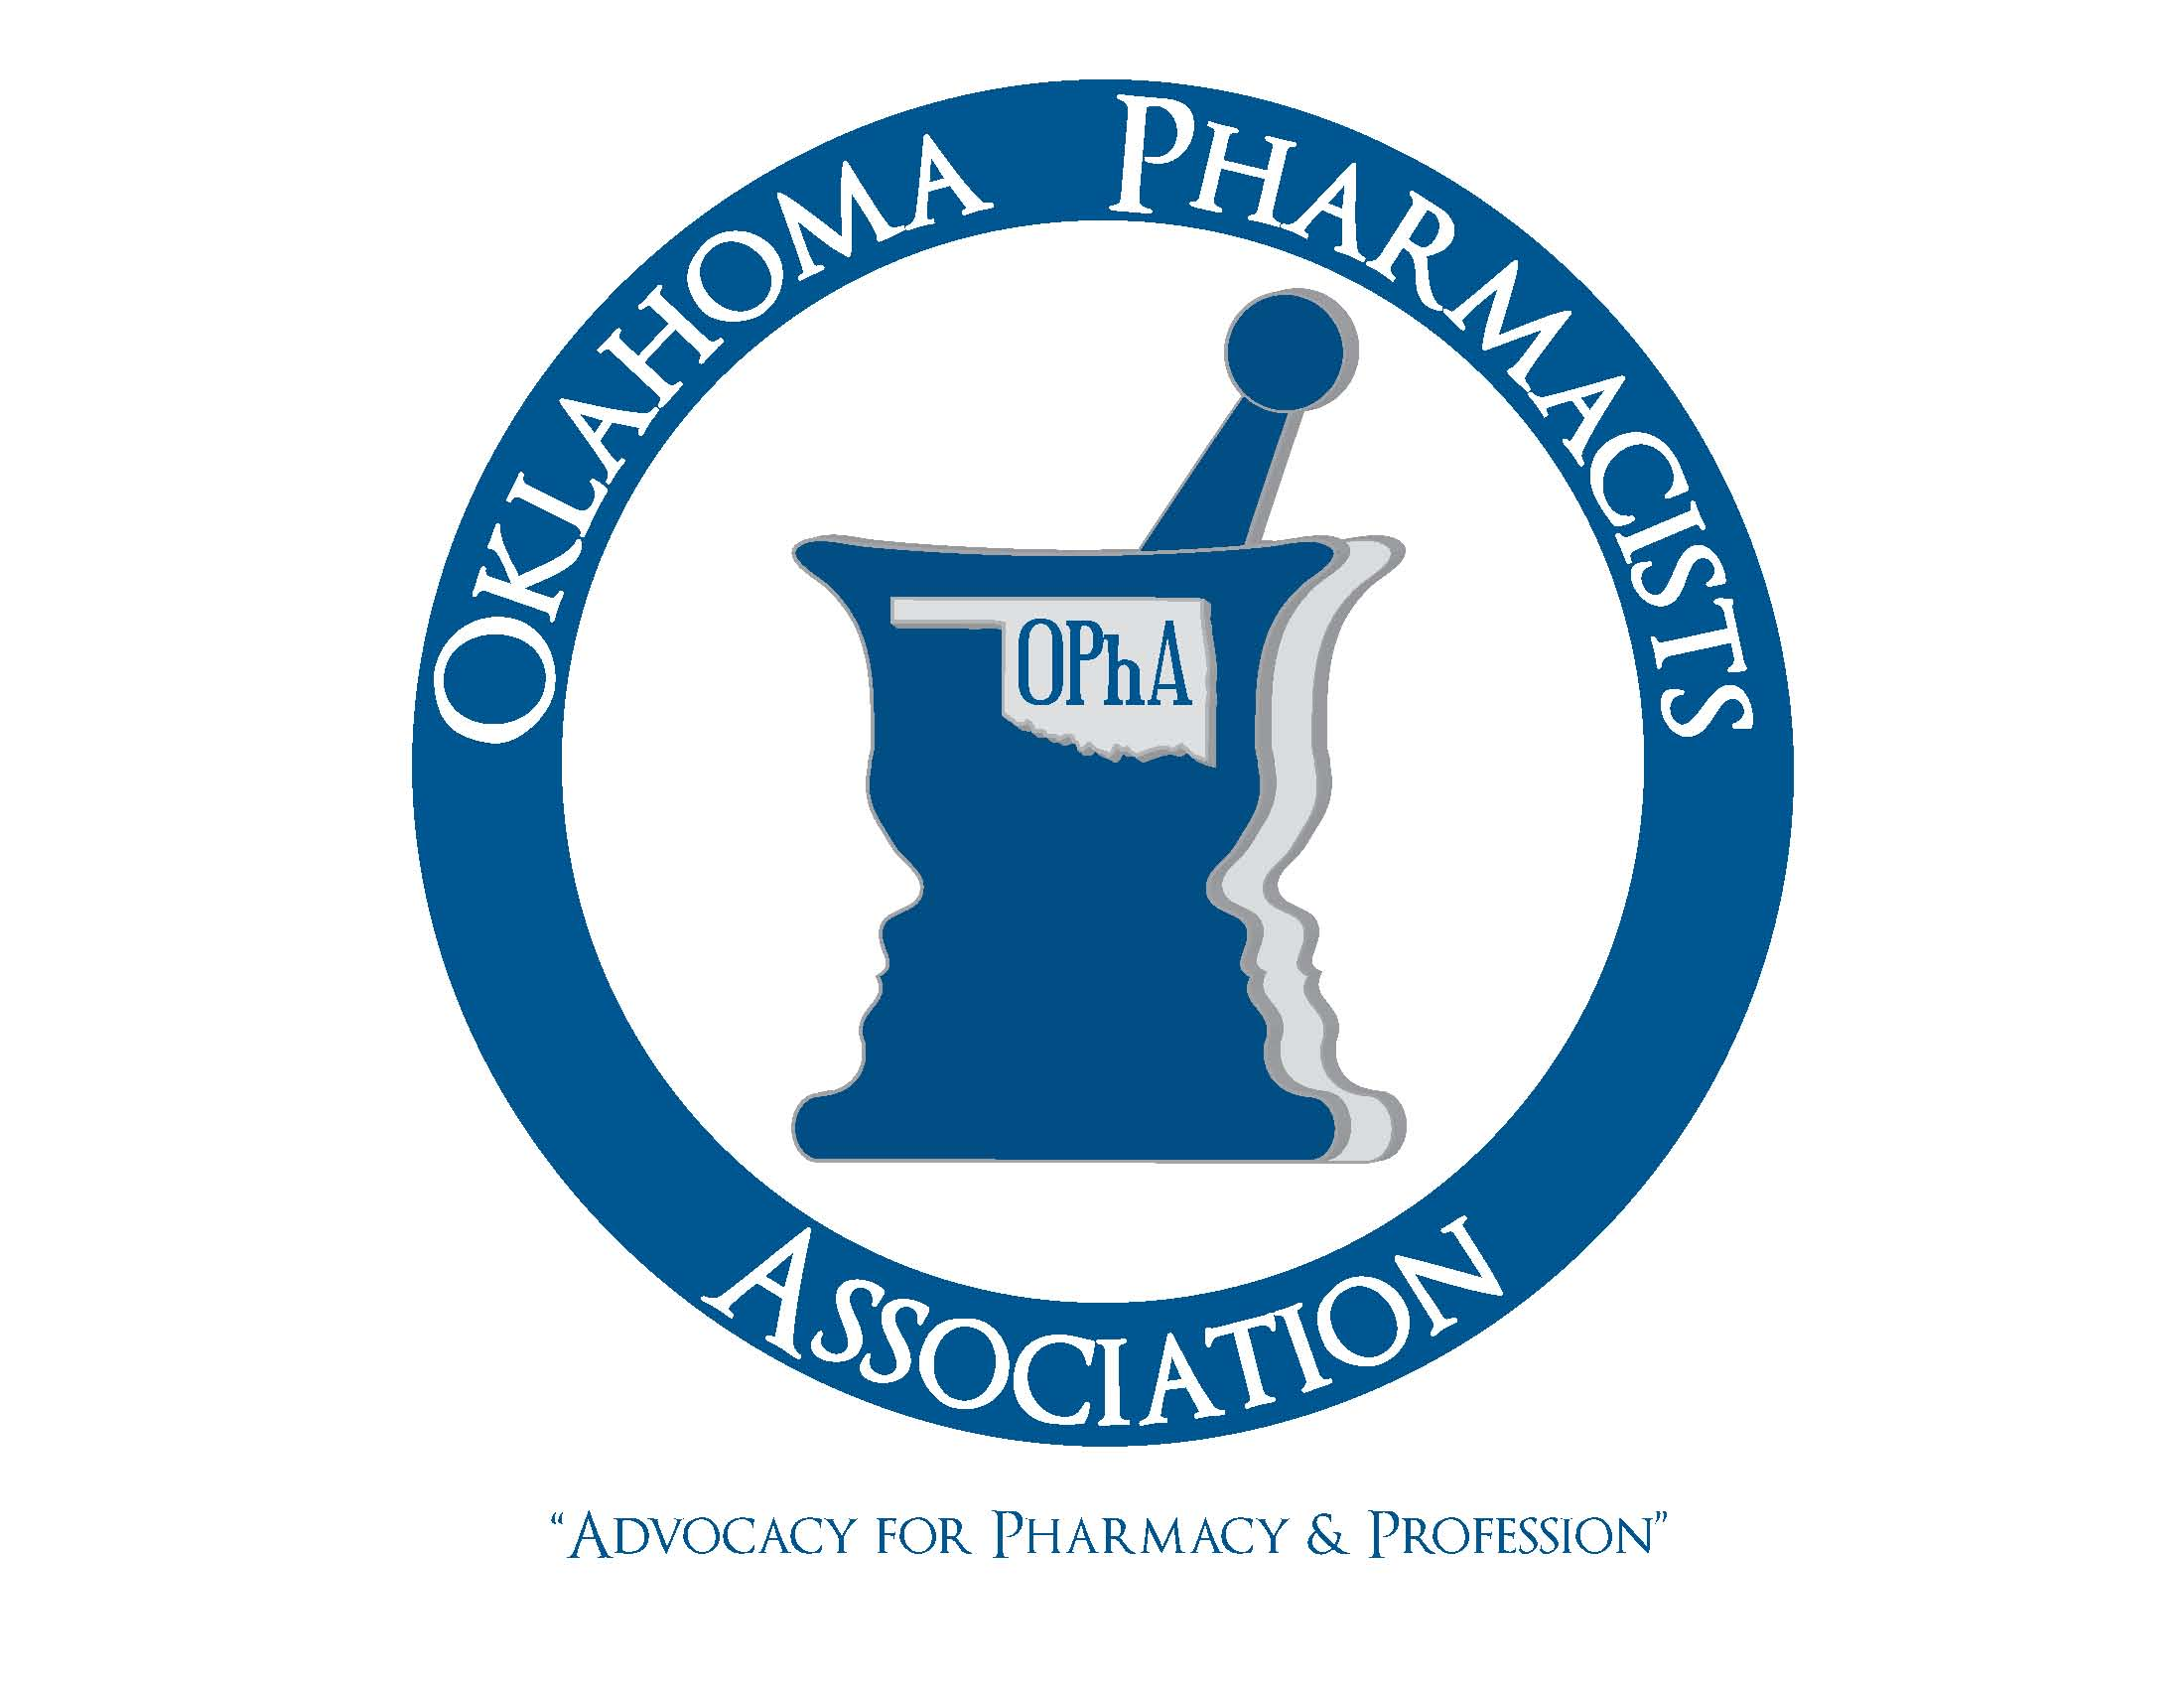 OK Pharmacy Association